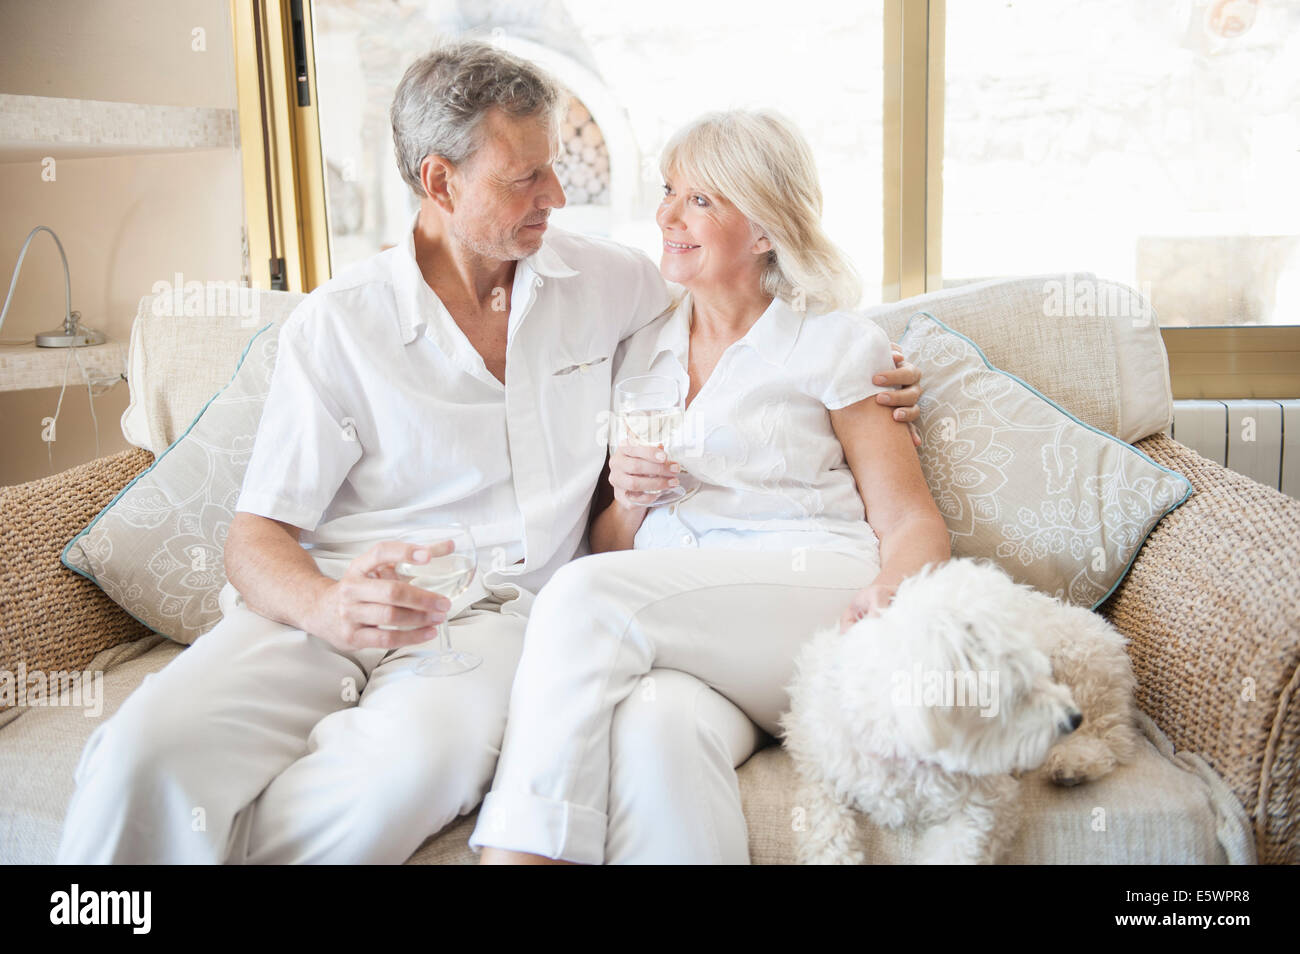 Couple celebrating in hotel room - Stock Image